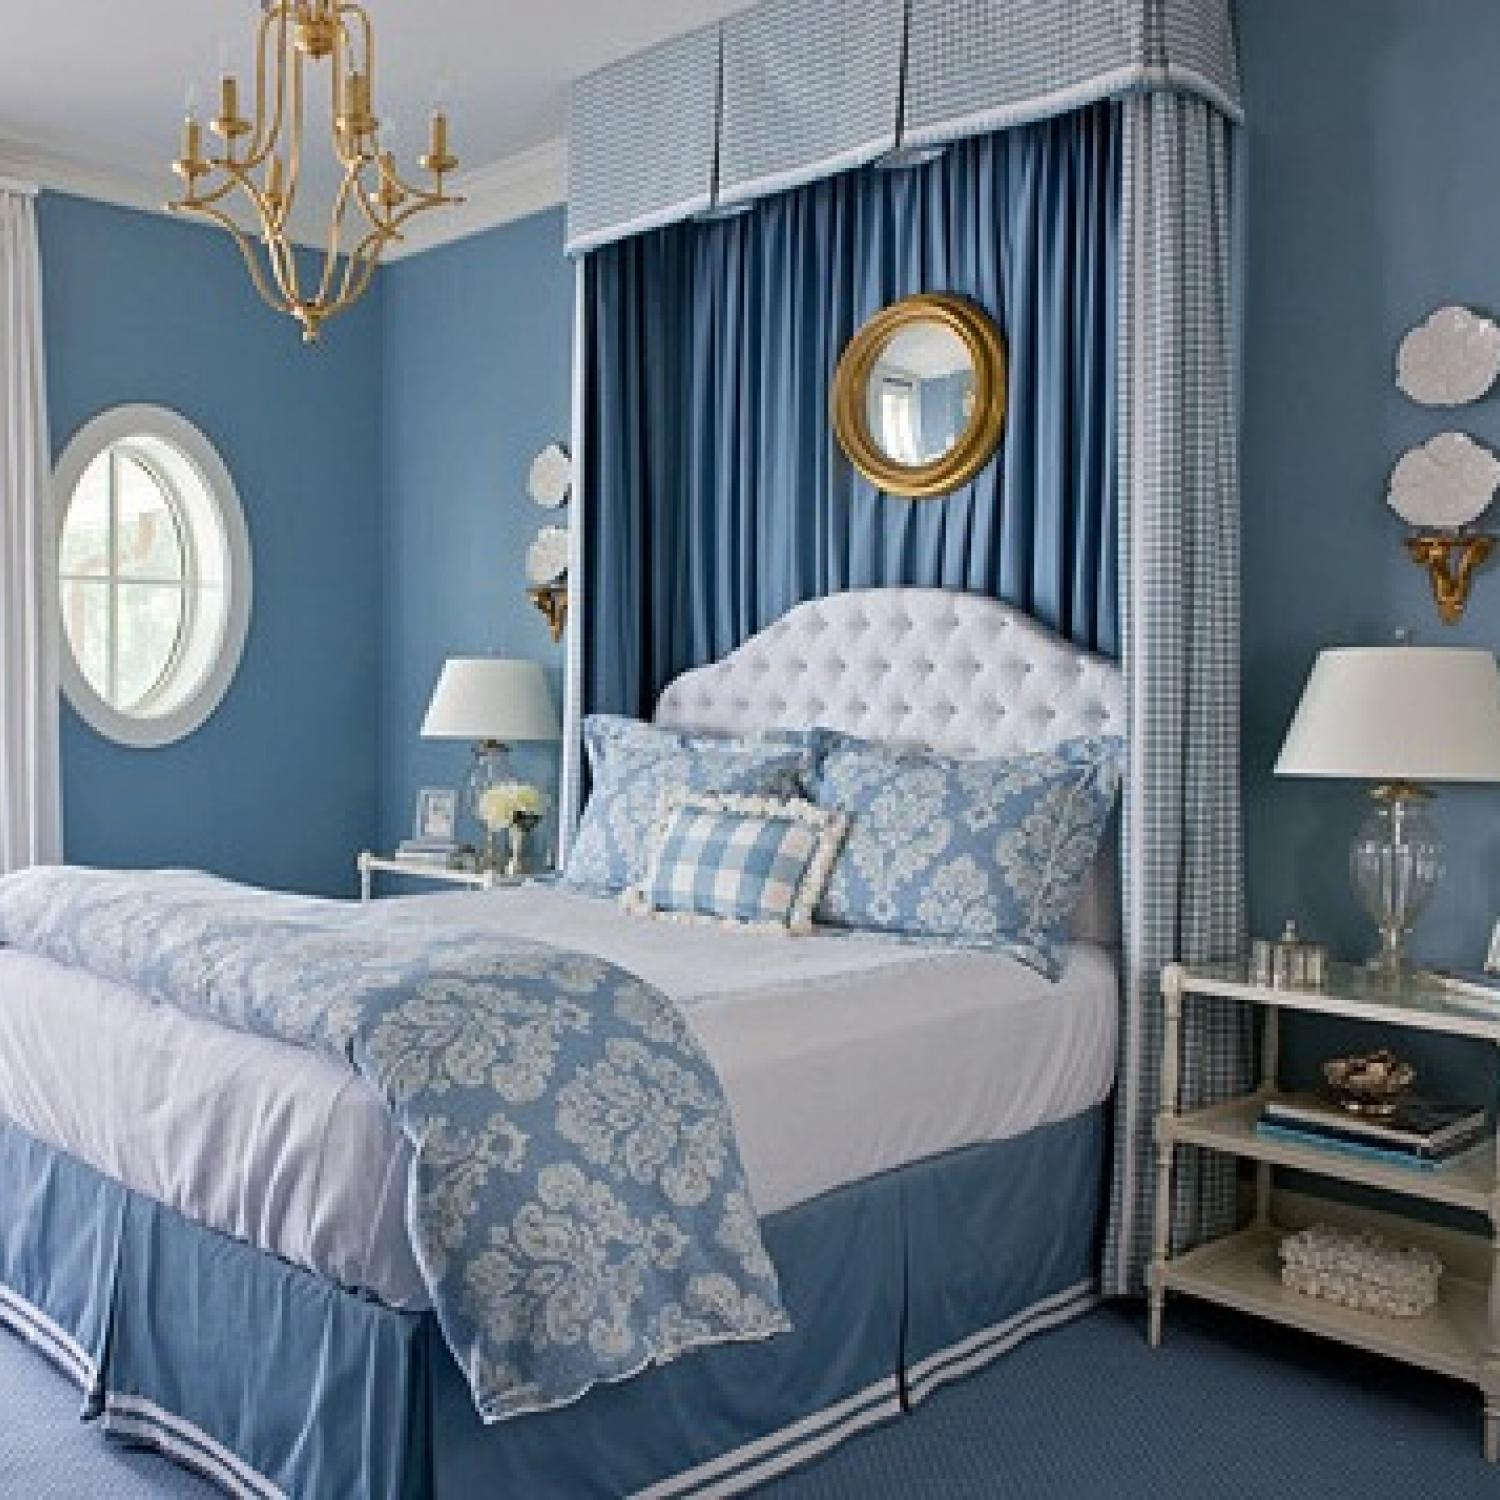 Bedroom Interior Colour Relaxing Bedroom Decorating Ideas Light Blue Ceiling Bedroom Interior Design Bedroom Wall Colour: Beautiful Blue Bedrooms